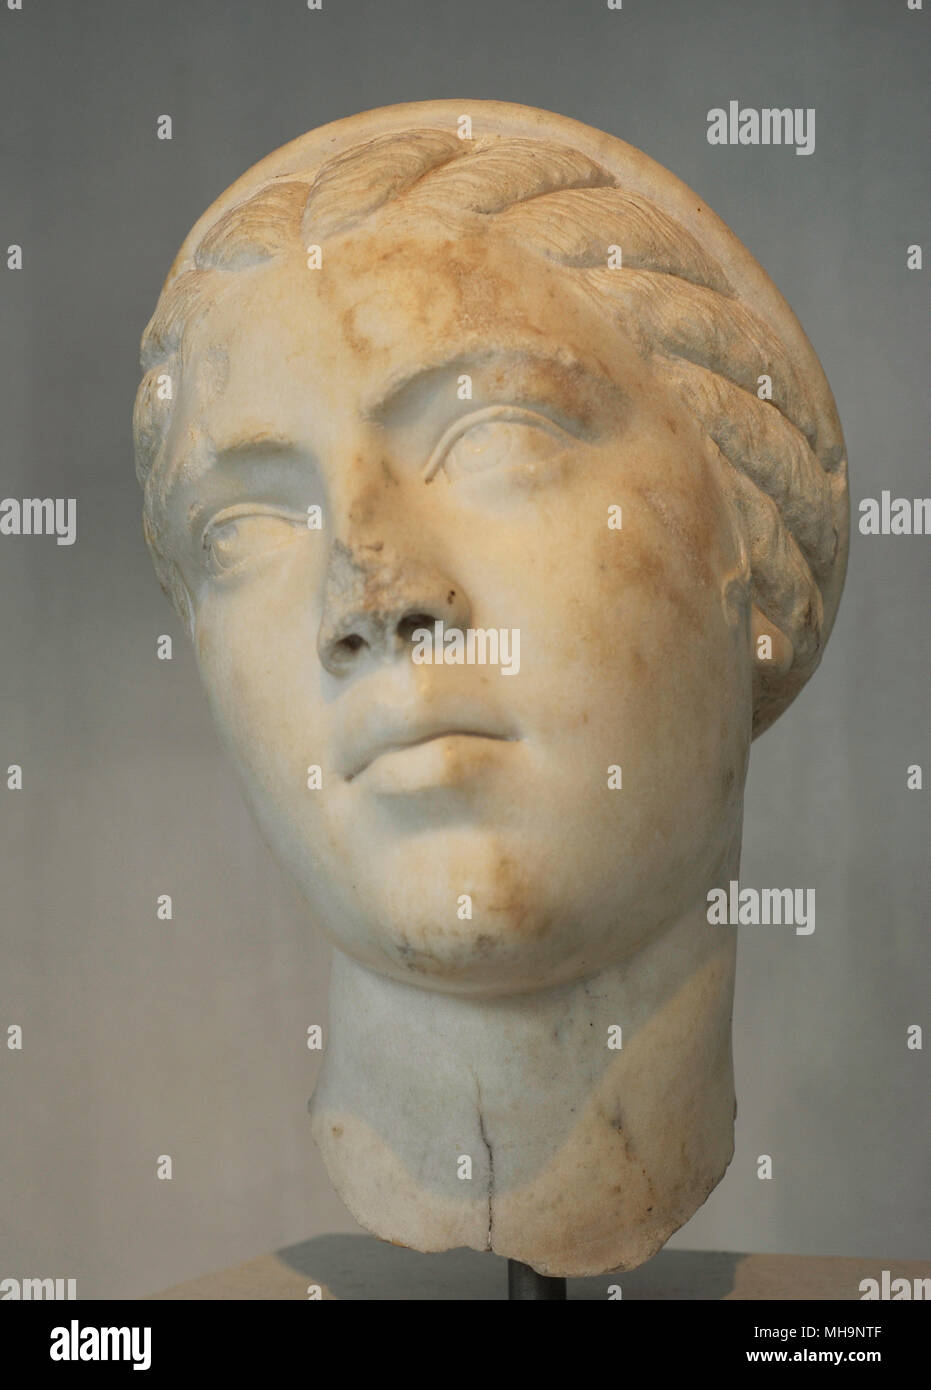 Fulvia Plautilla (c. 185-211). The only wife of the Roman emperor Caracalla. Se was exiled and eventurally killed. Portrait. Late 2nd - Early 3rd century AD. Acropolis Museum. Athens. Greece. - Stock Image